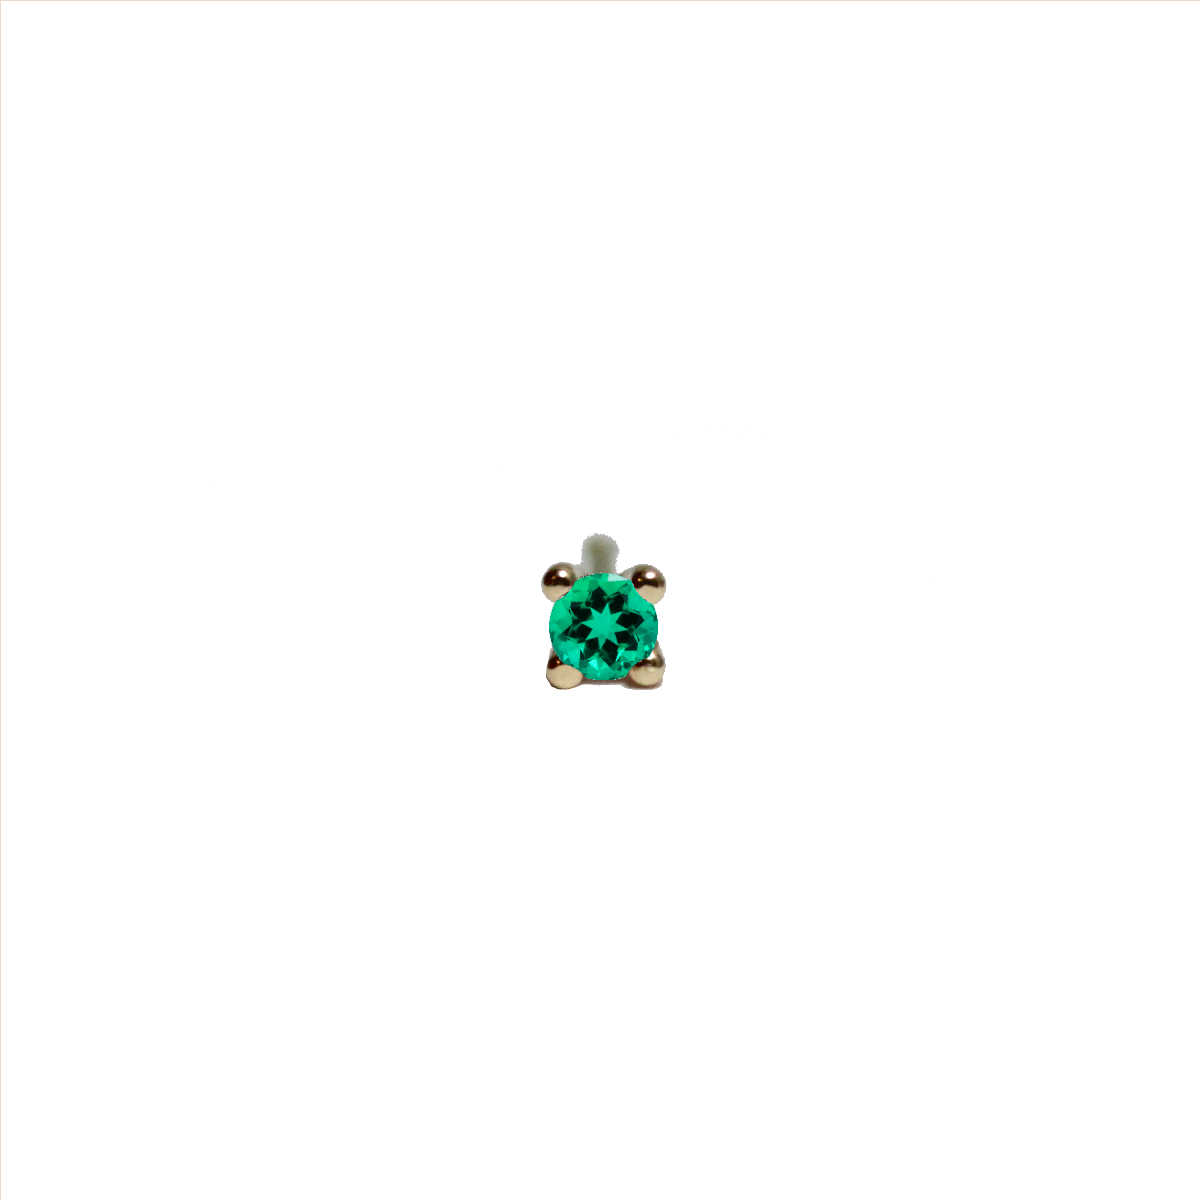 Tiny Pointy Earstud - Green Emerald